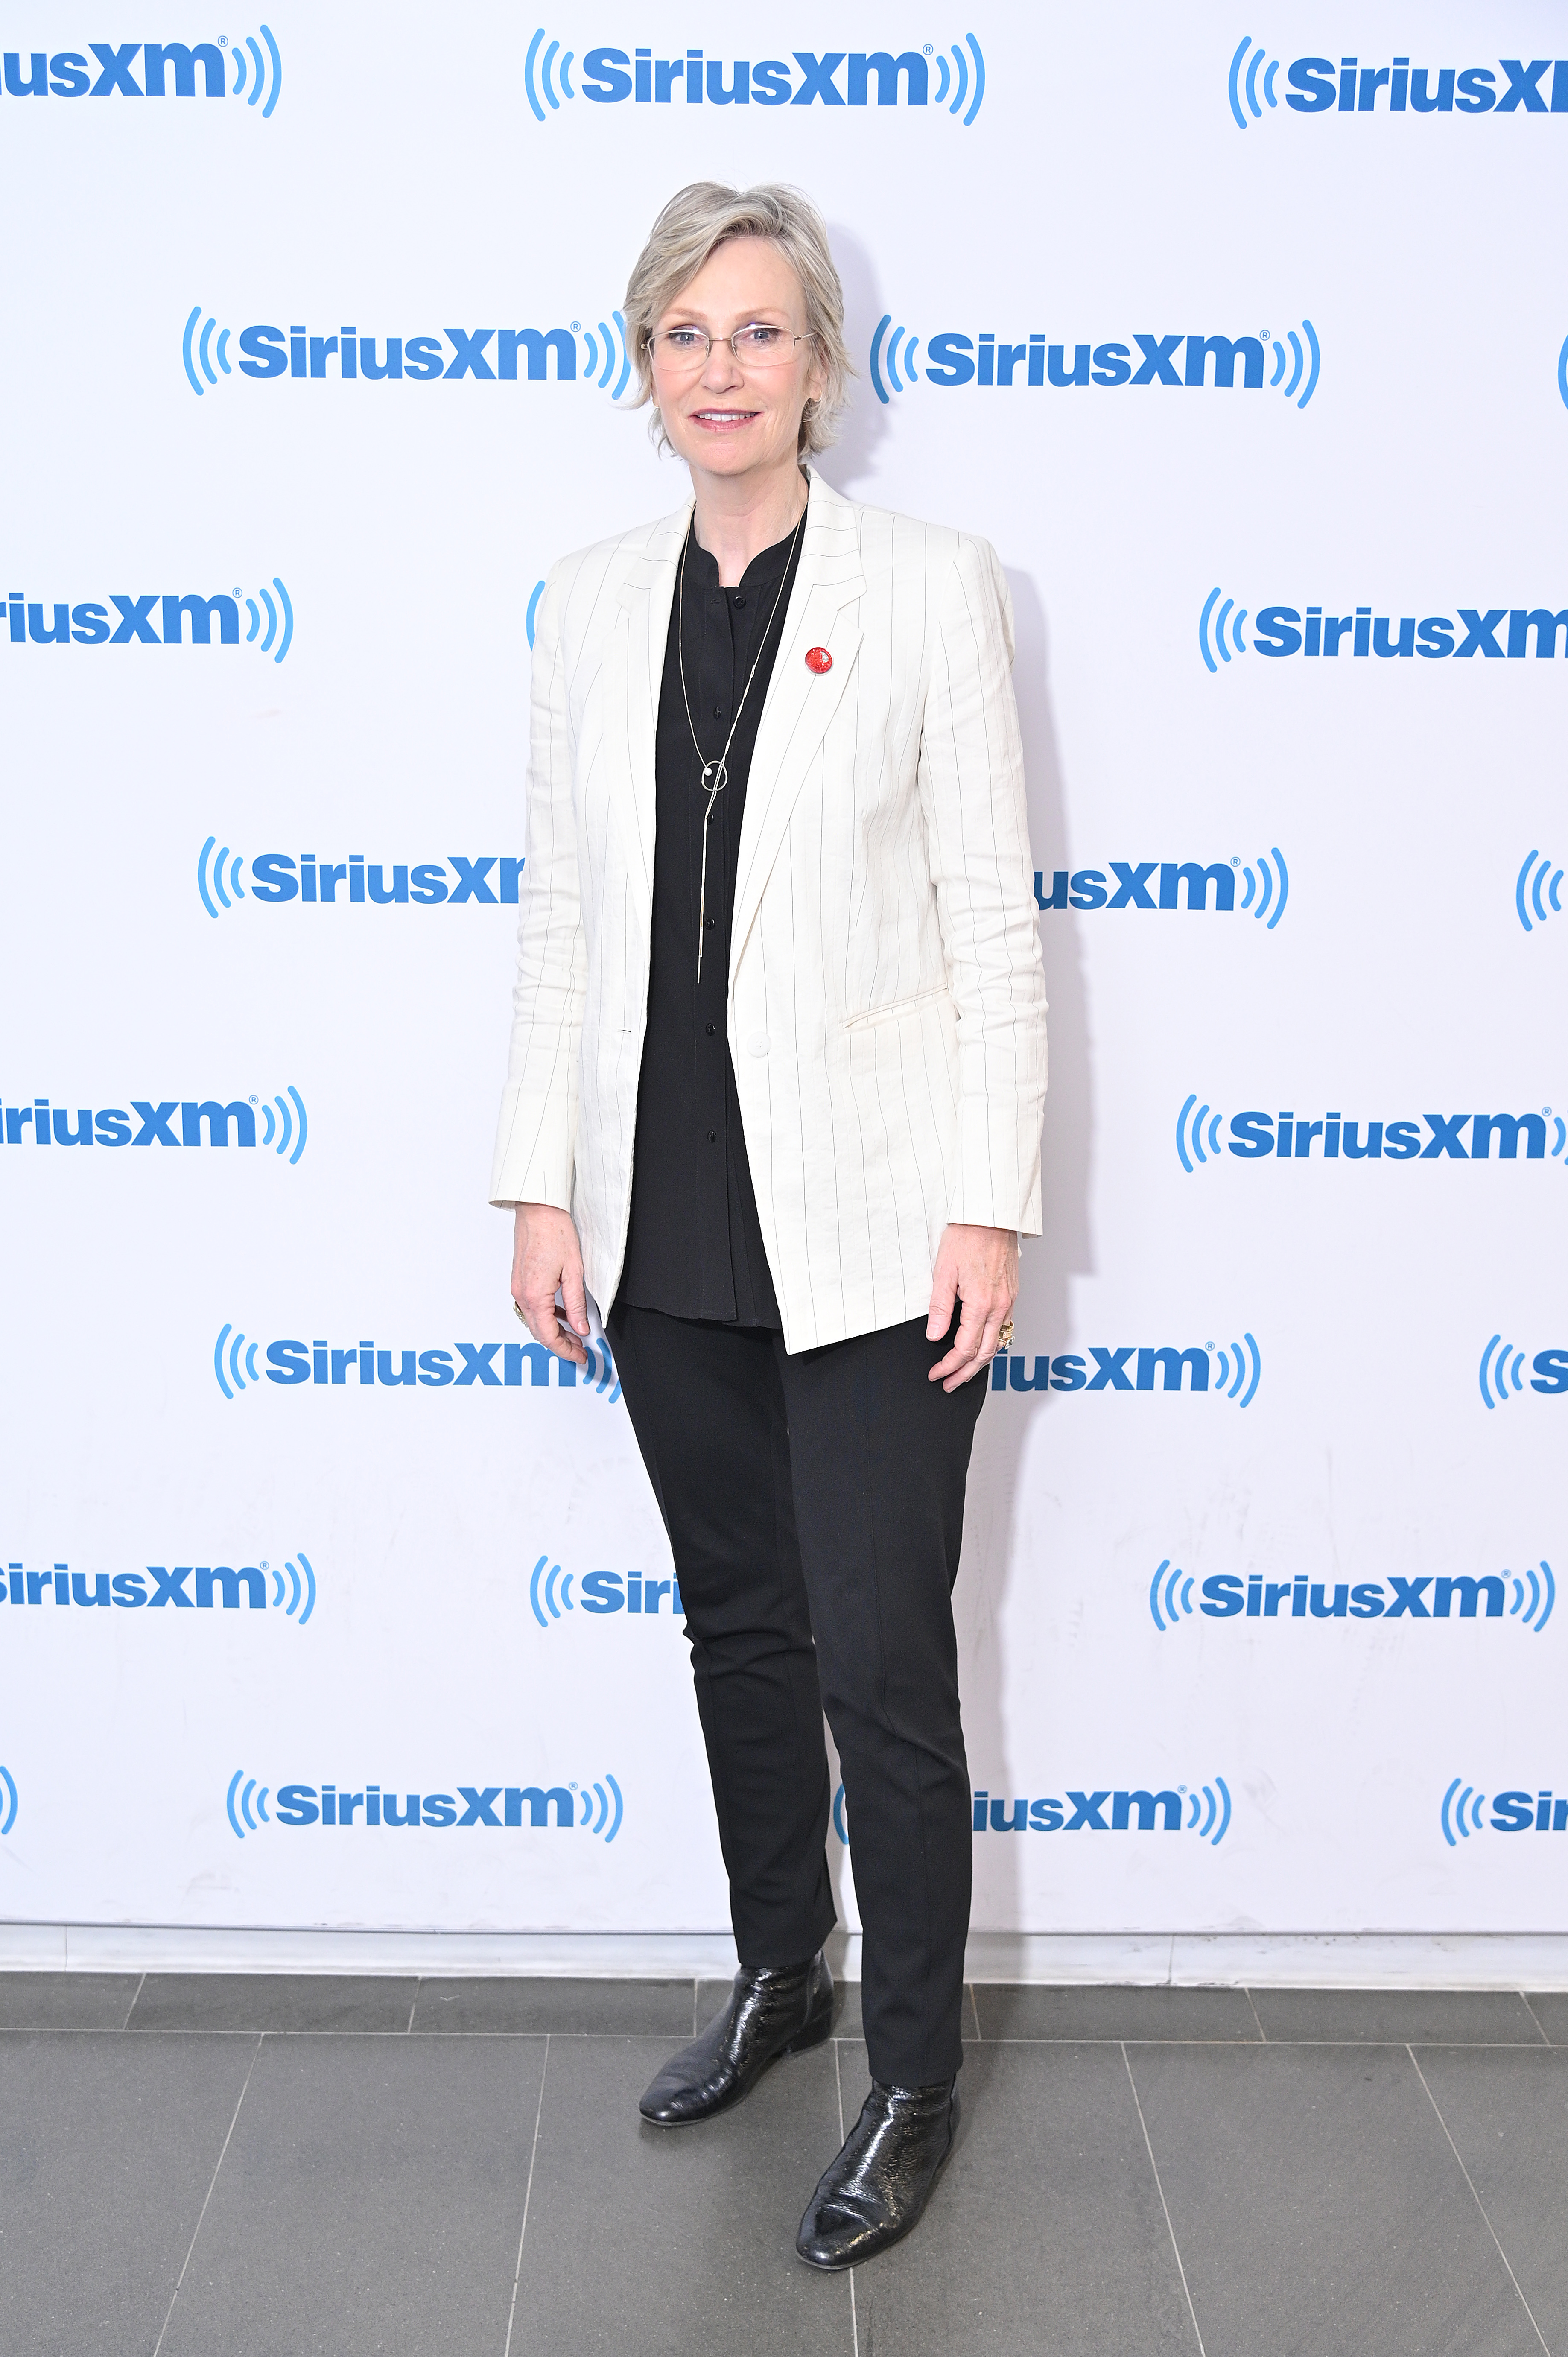 Jane Lynch visits SiriusXM Studios in New York City on April 22, 2019.